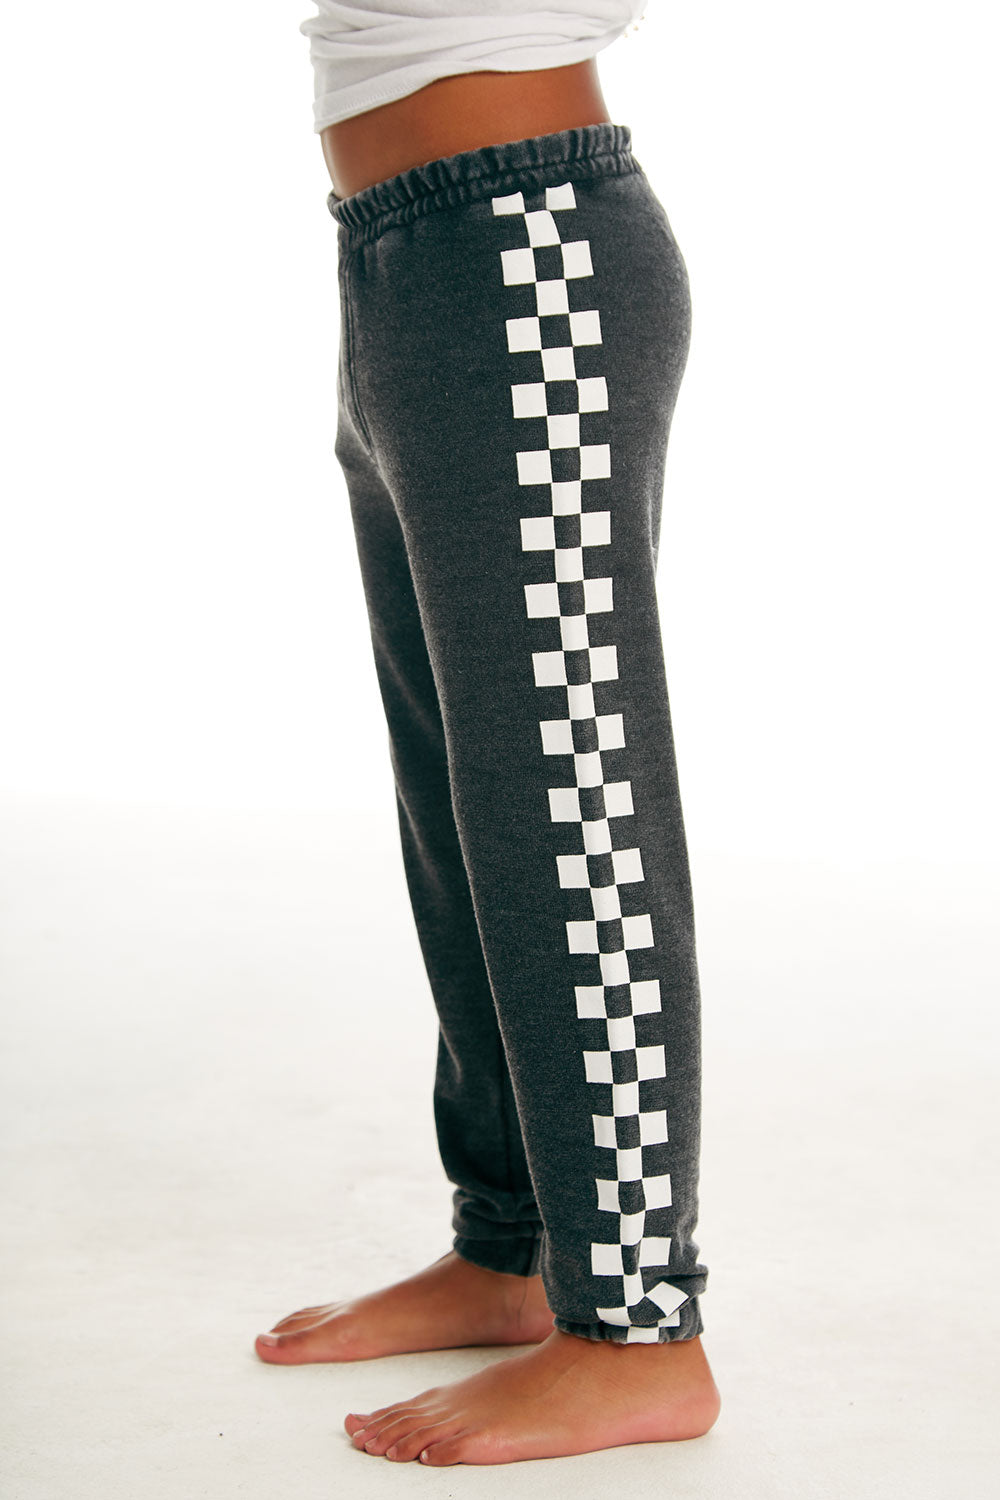 Racer Pants BOYS - chaserbrand